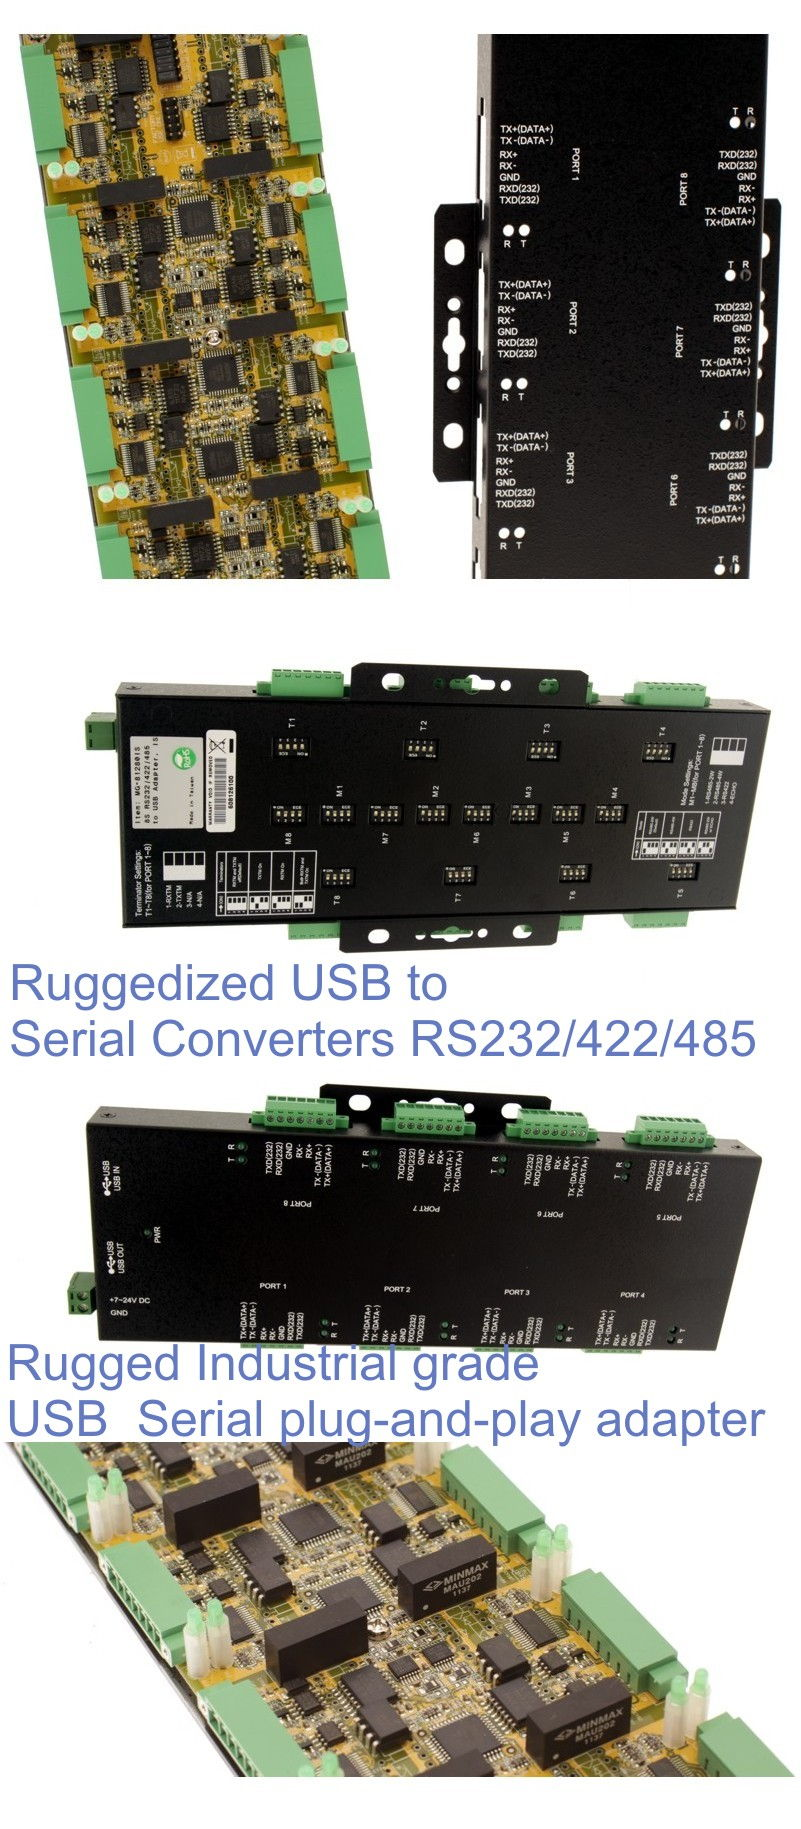 Rugged Industrial 8-Port Terminal Block RS232/422/485 to USB Adapter  - Image B